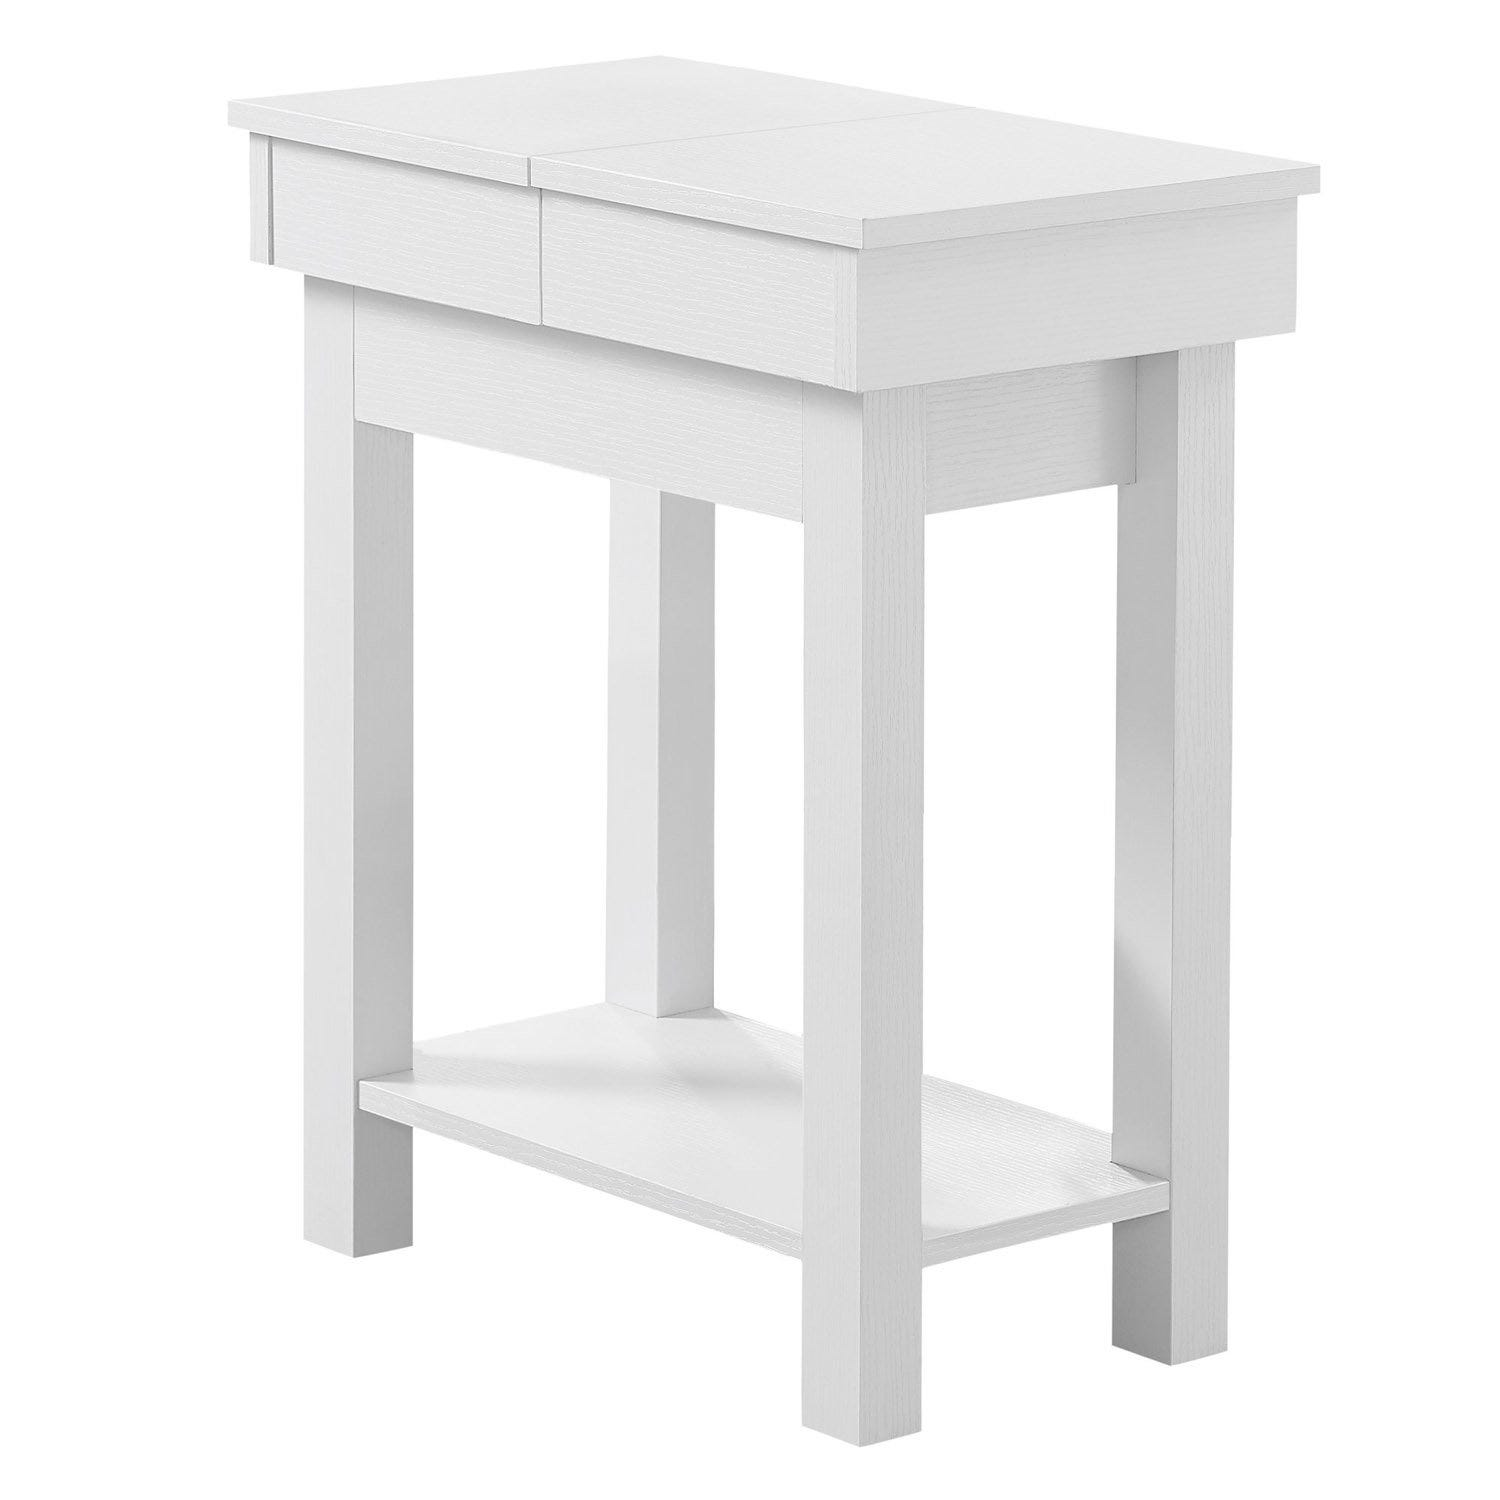 - Monarch ACCENT TABLE RD Furniture